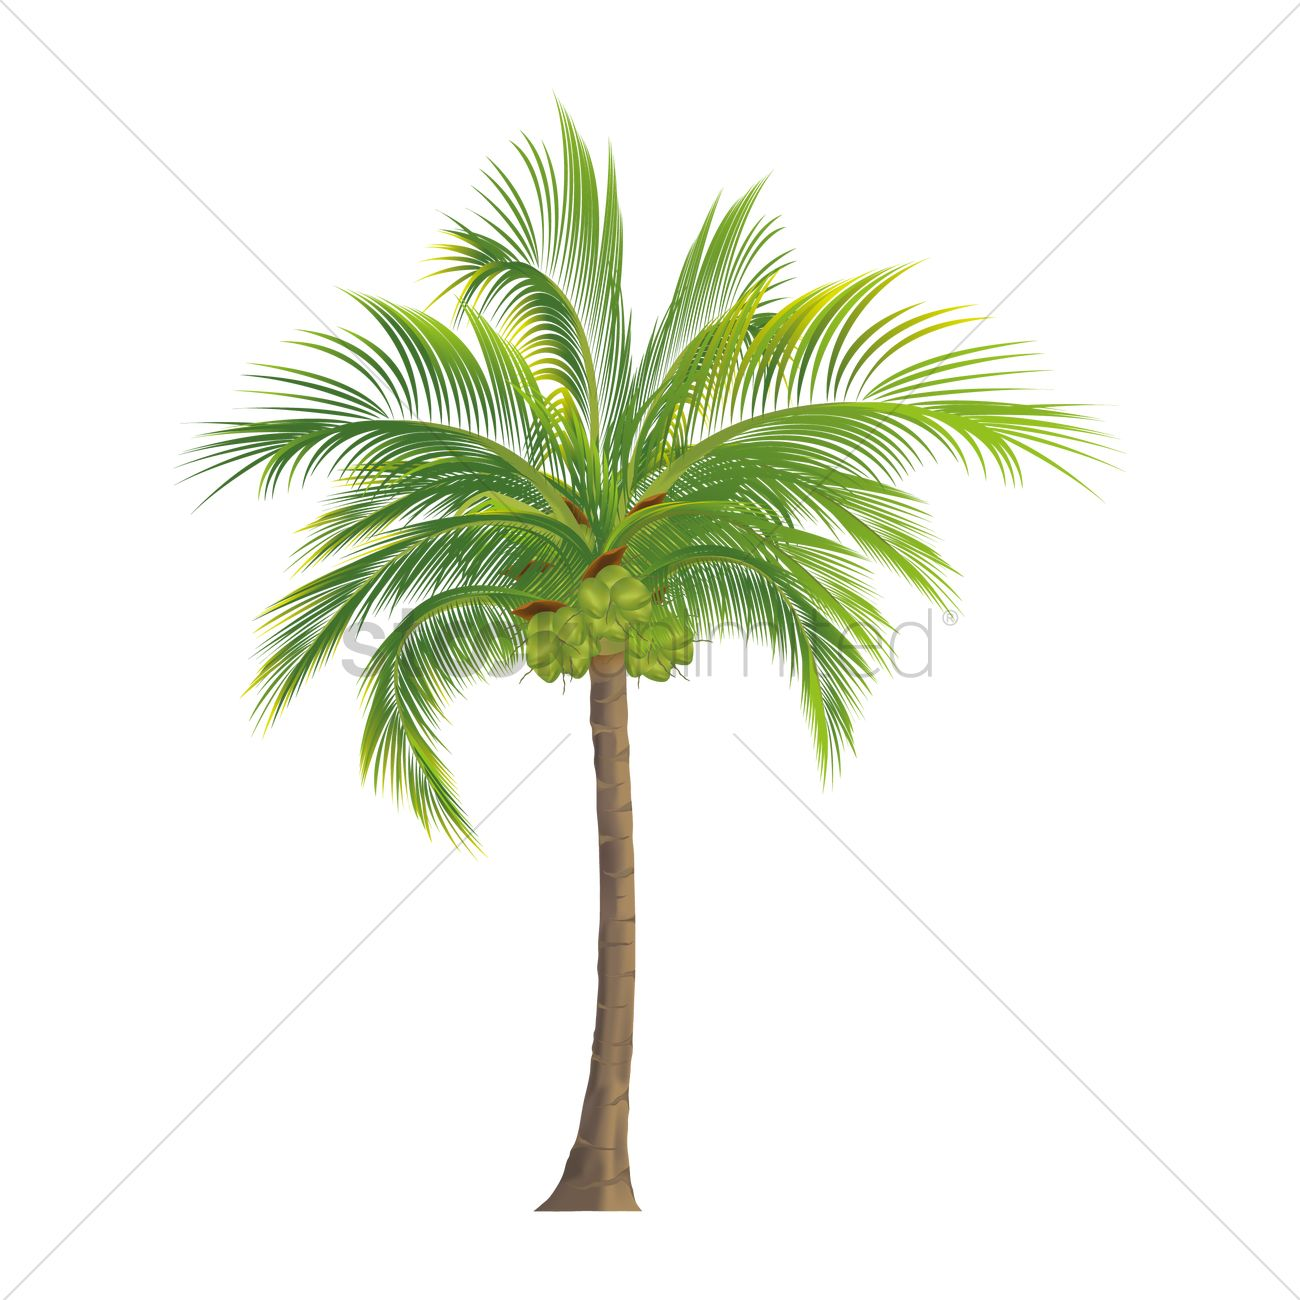 Coconut Tree Transparent Background